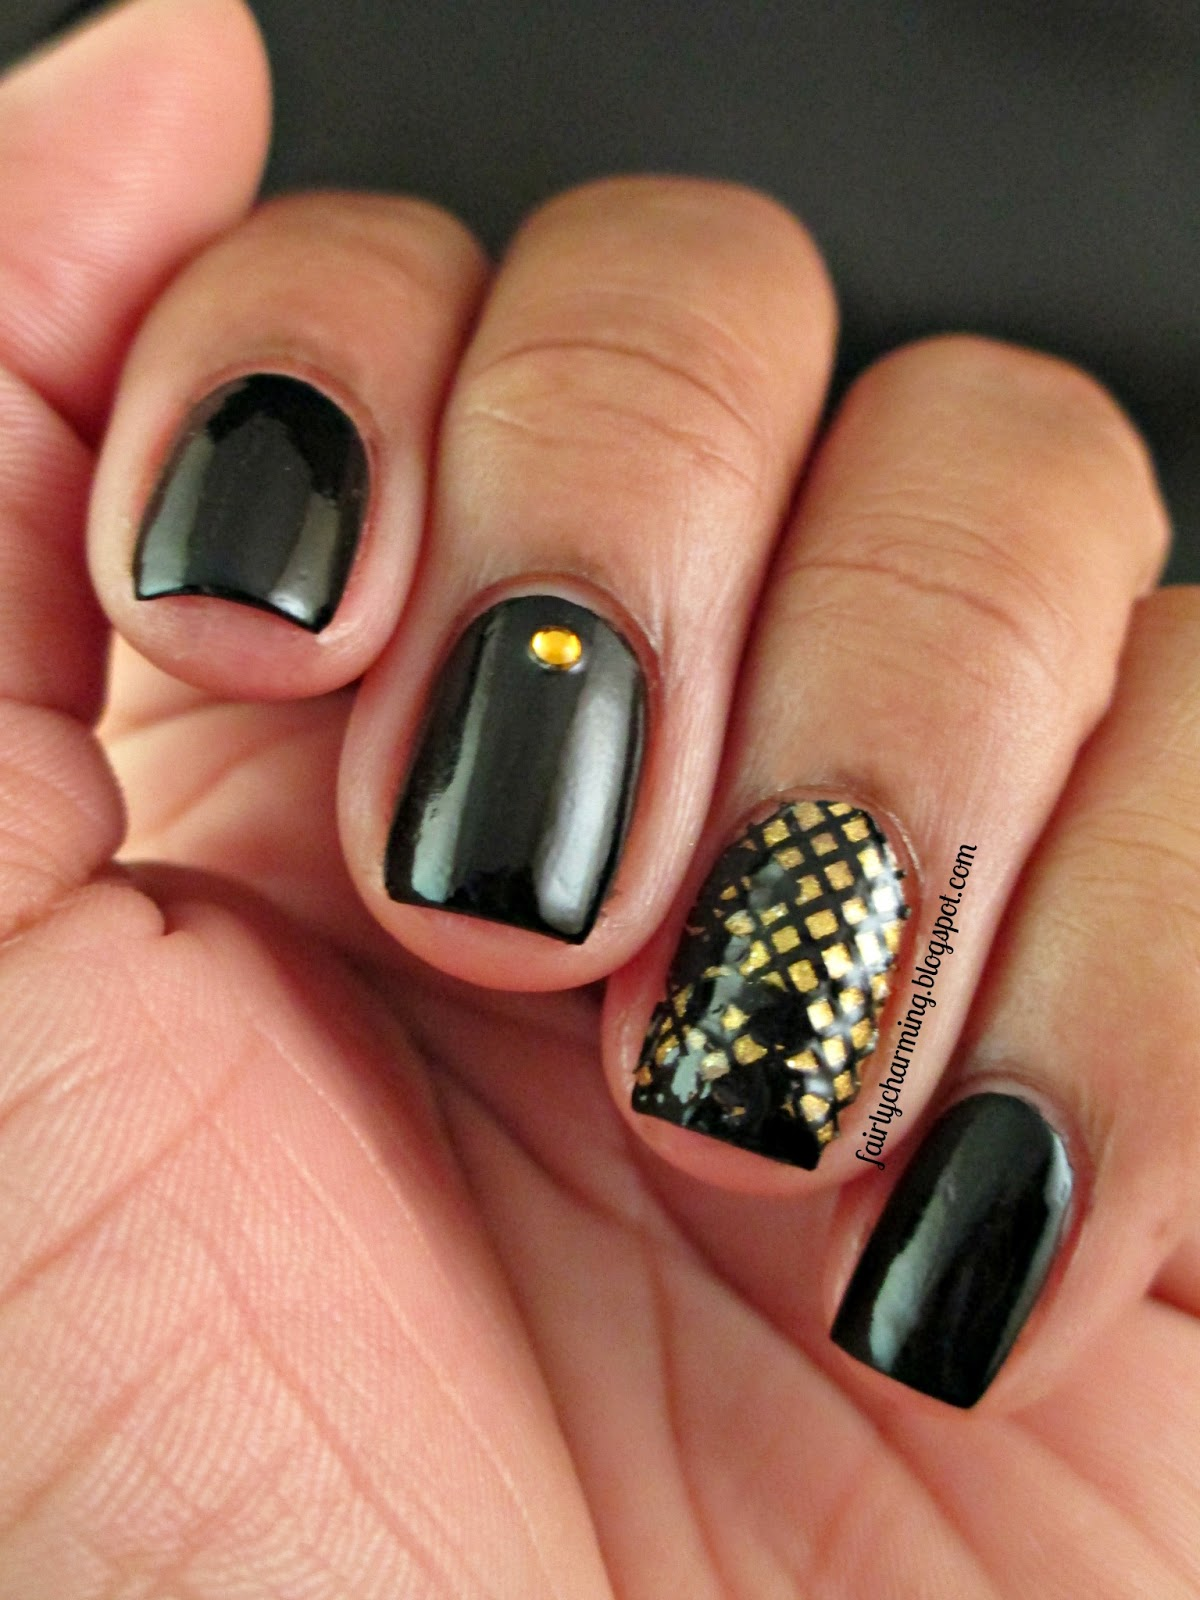 Rimmel Black Satin, China Glaze Champagne Bubbles, Fingrs Lace Up Kit, black, gold, lace, elegant, simple, formal, black tie, nails, nail art, nail design, mani